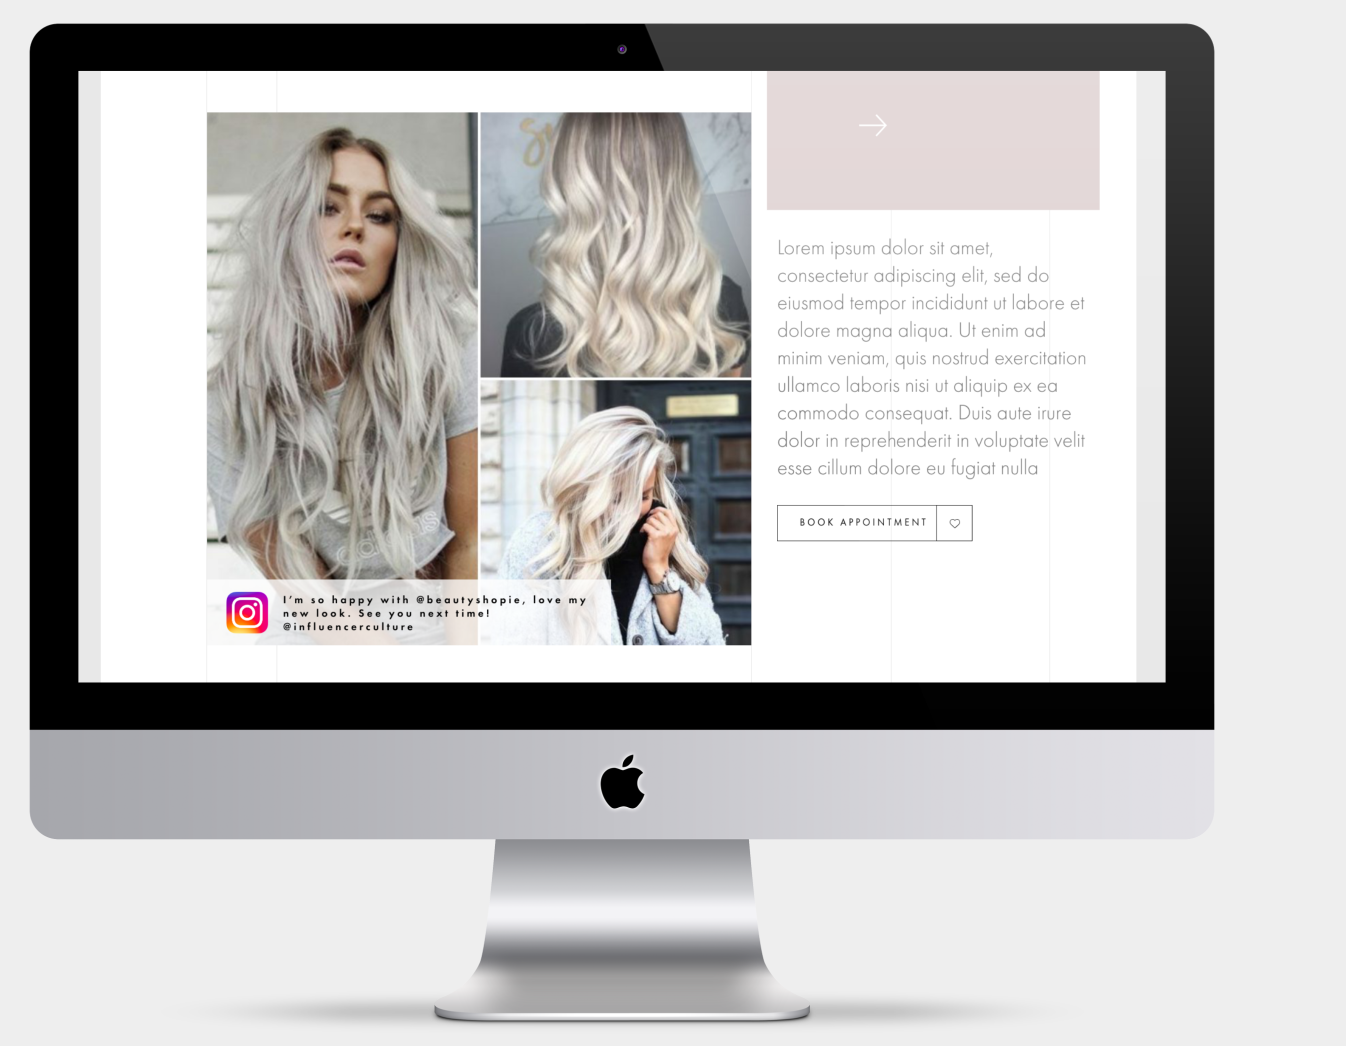 Booking button is conveniently placed beside a social media influencer's instagram post. Although there has been a small backlash against influencer culture as of late, many people still turn to influencers for inspiration, reviews and testimonials.